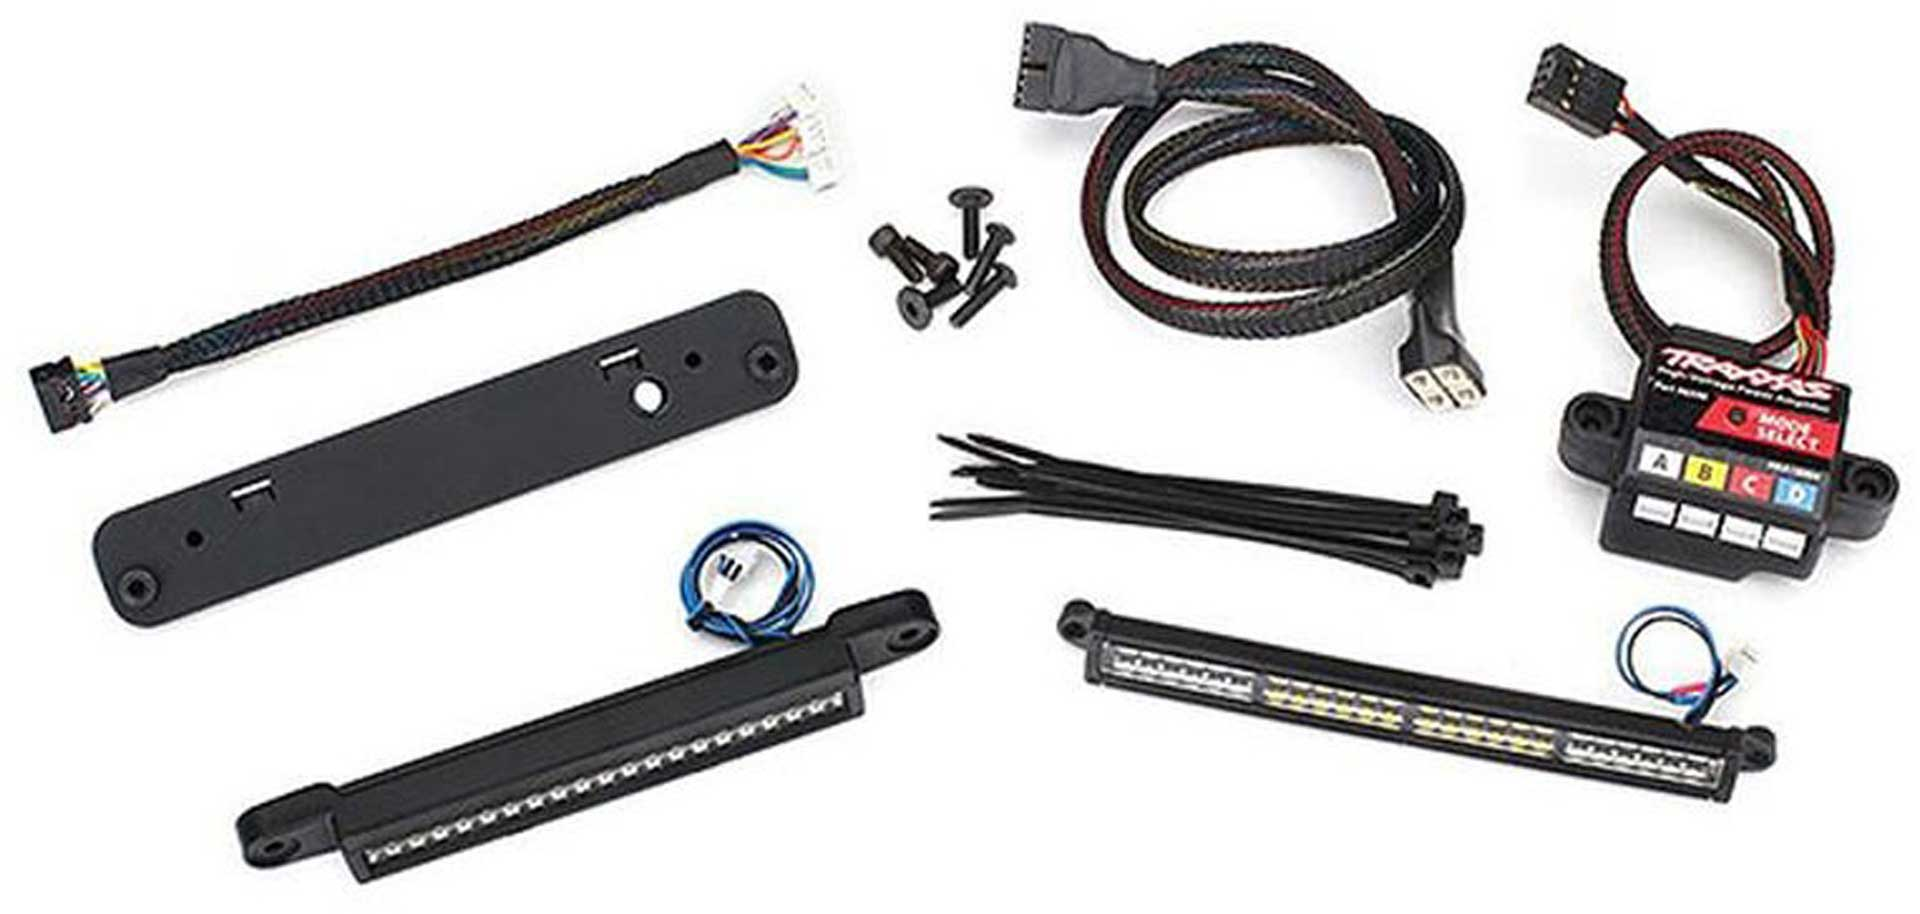 TRAXXAS LED LIGHT KIT COMPLETE (INCL 6590